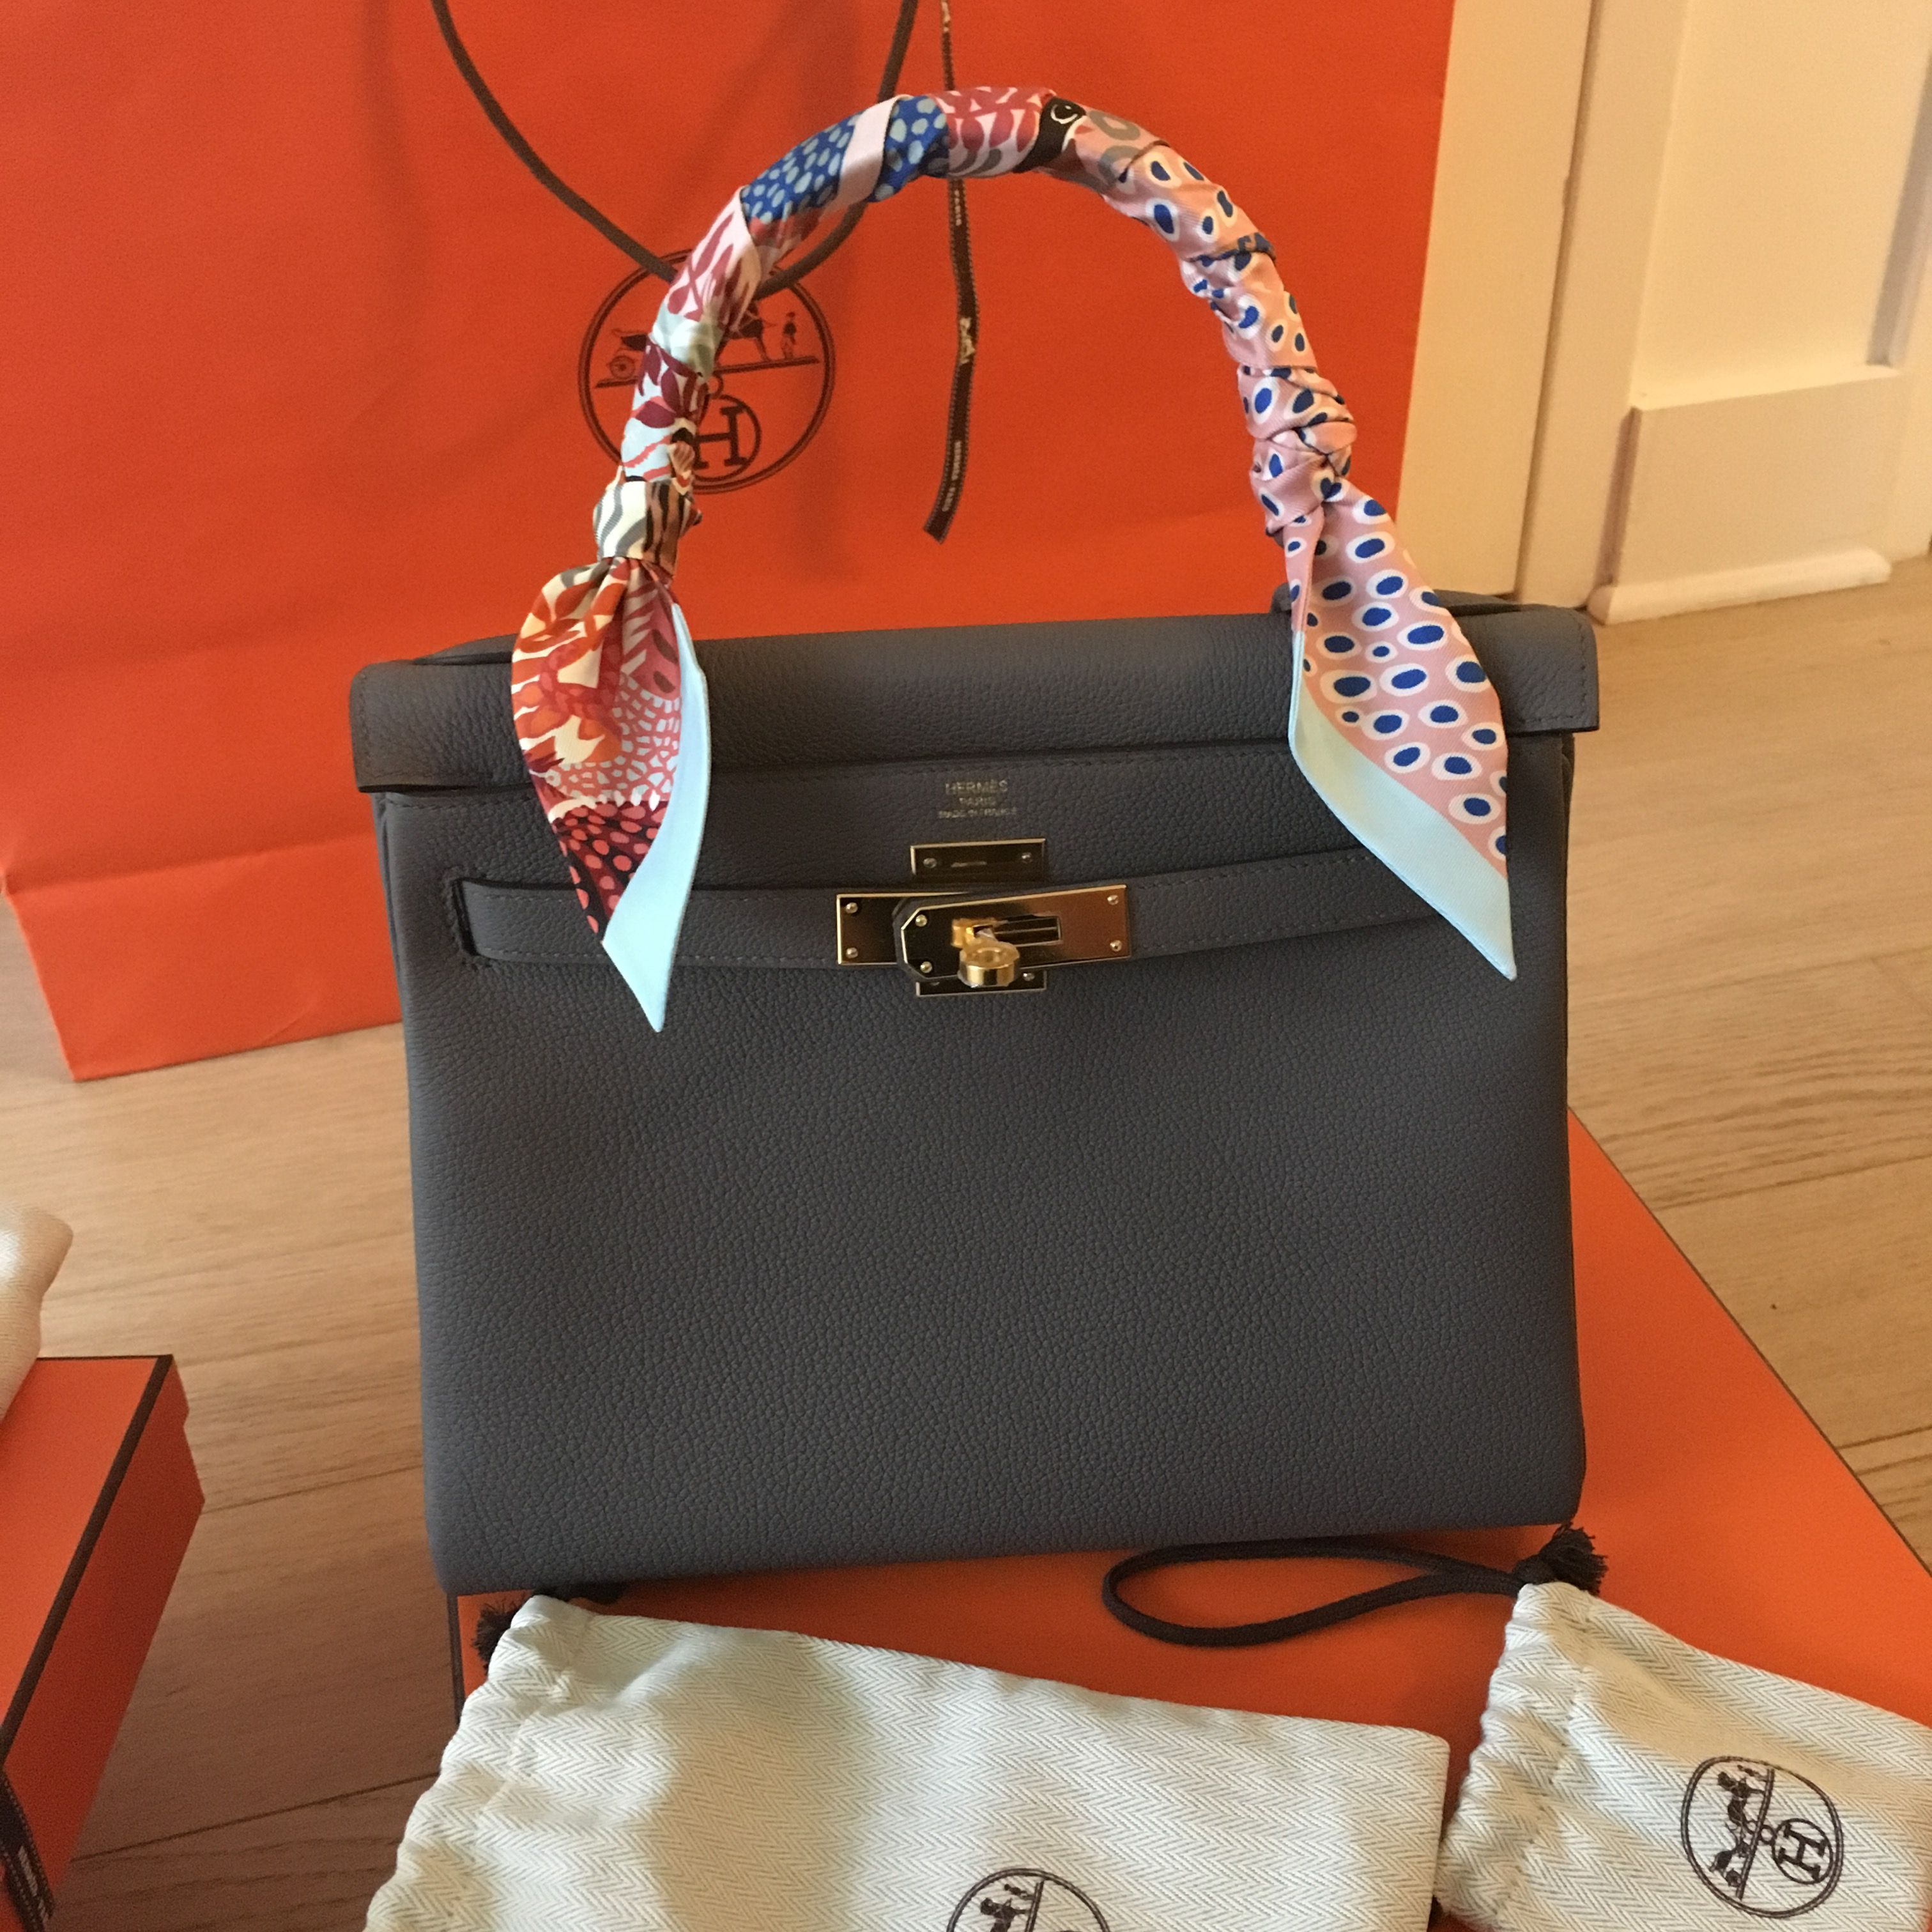 ... coupon for hermes kelly 28 togo etain ghw a stamp etain kelly kelly28  kelly etain 907e9 82444ca8cb3f7